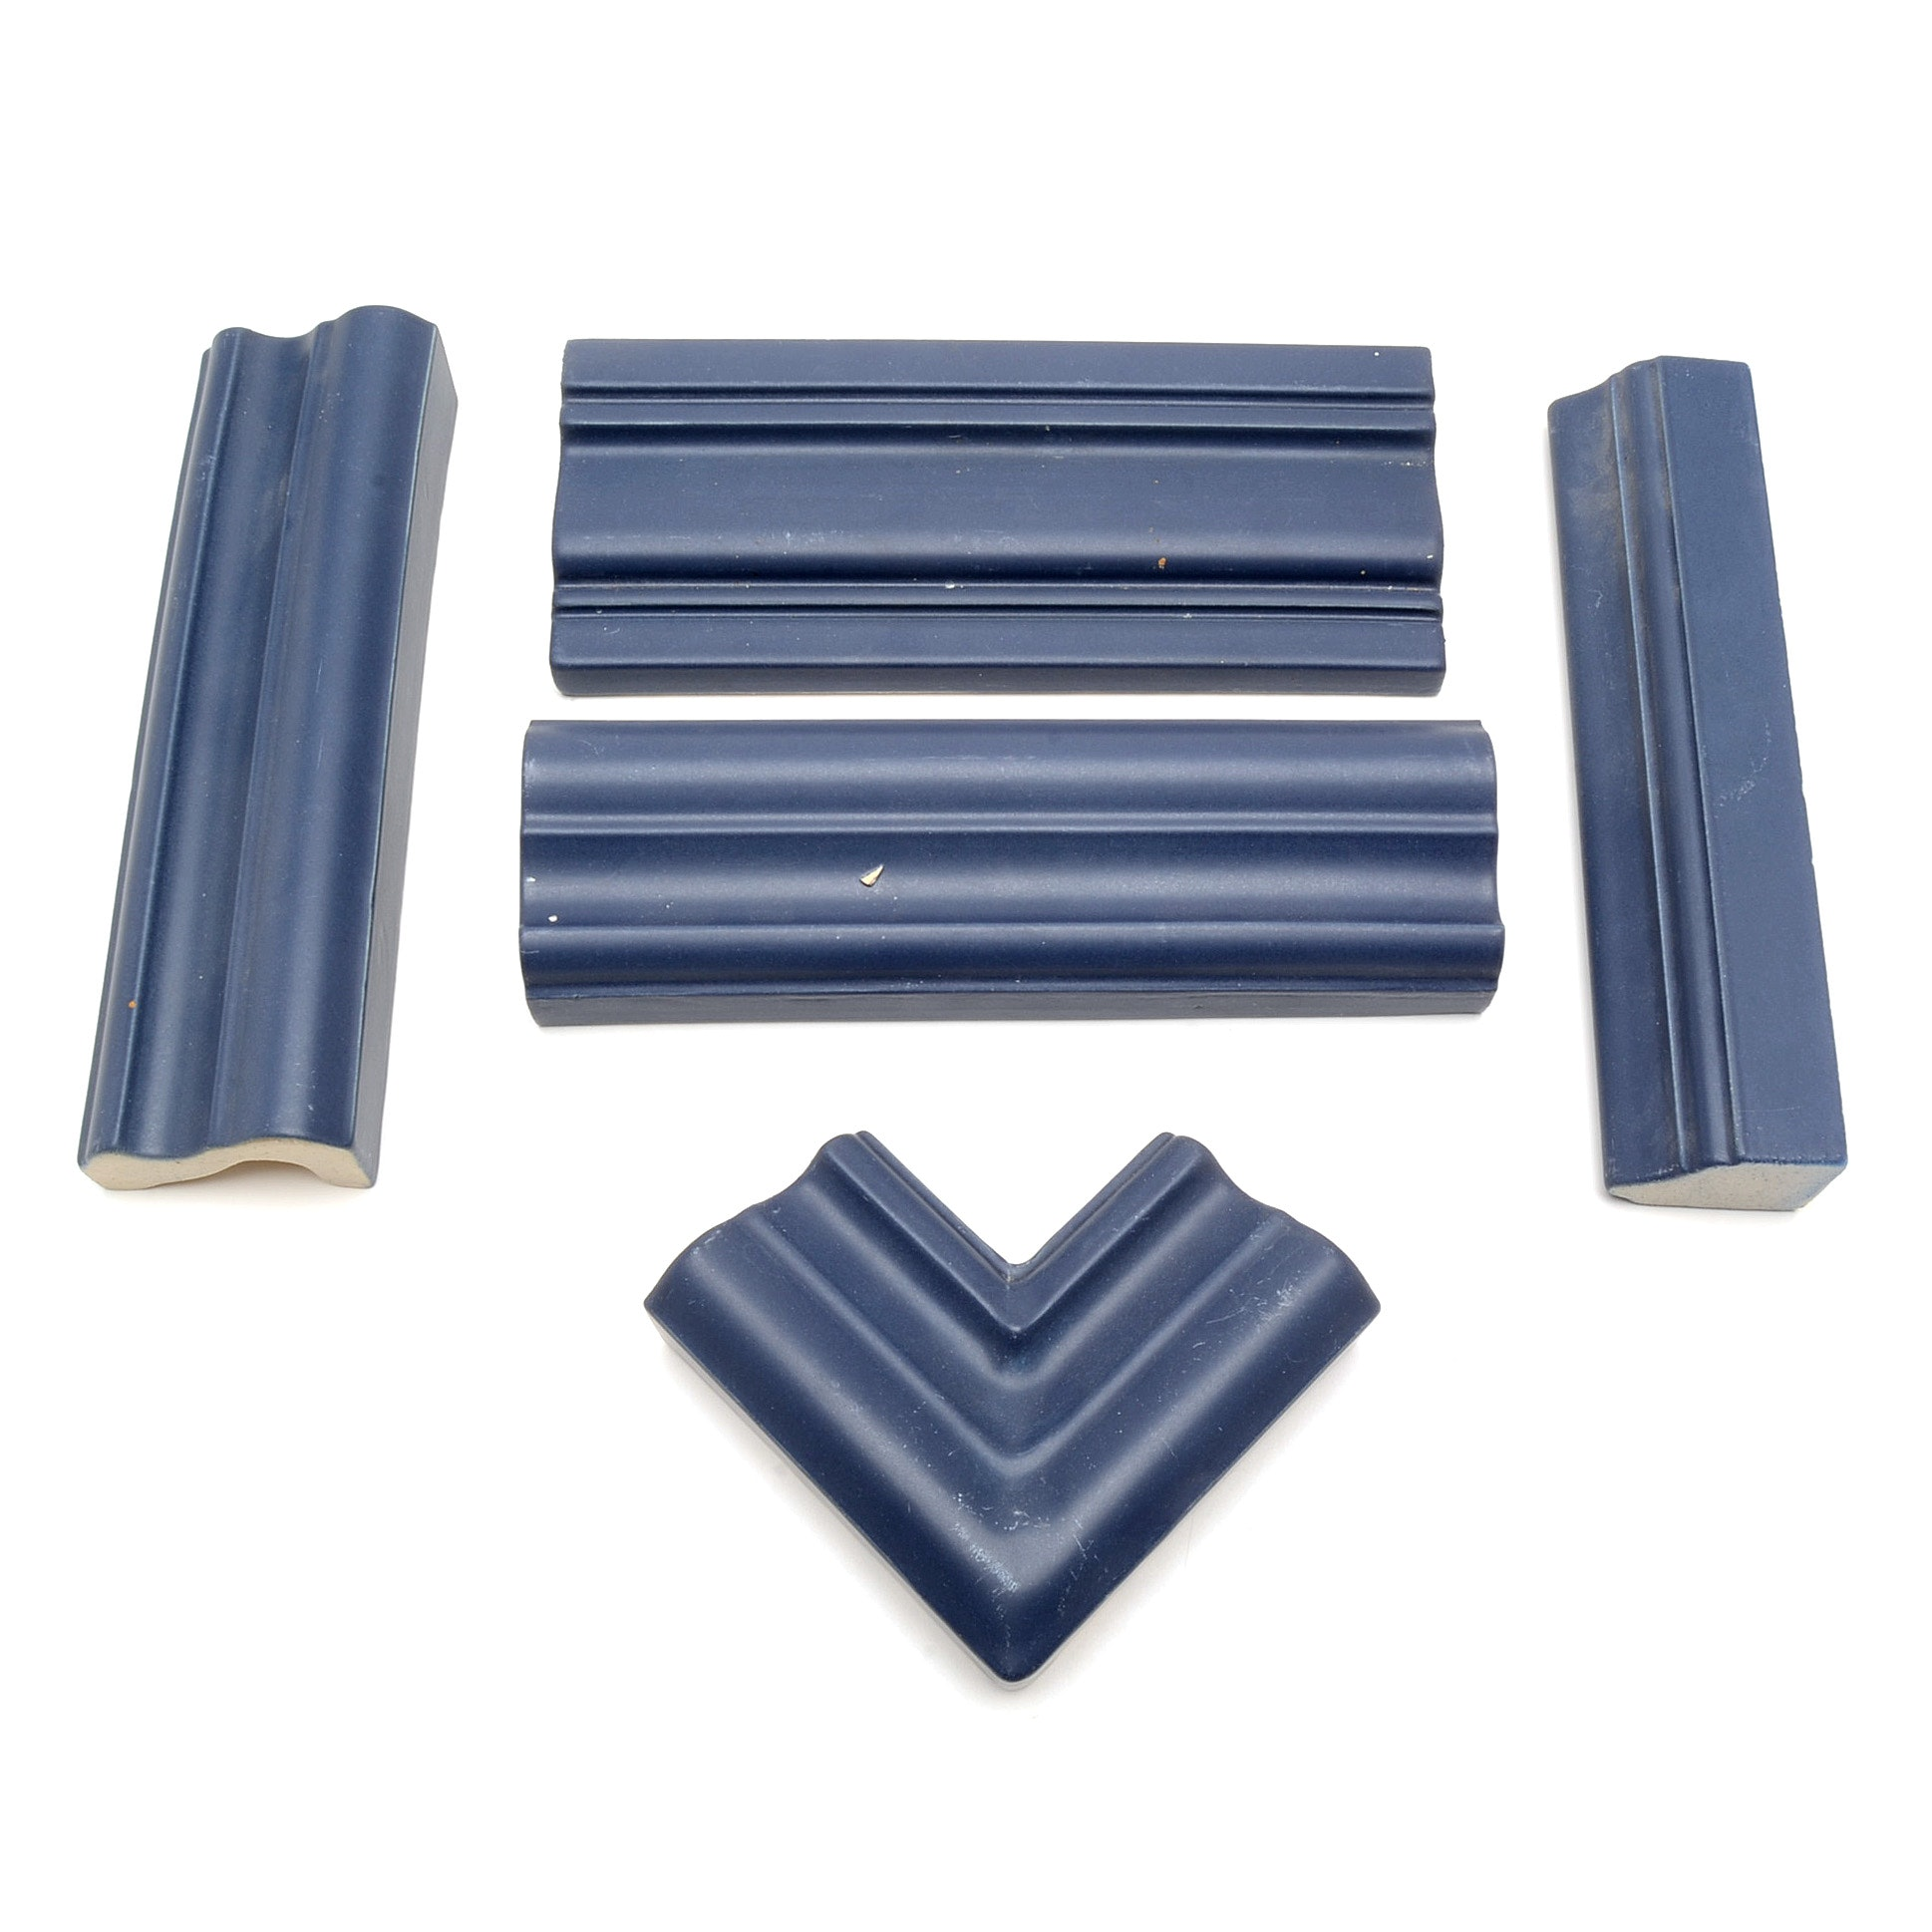 Rookwood Pottery Faience Architectural Moldings